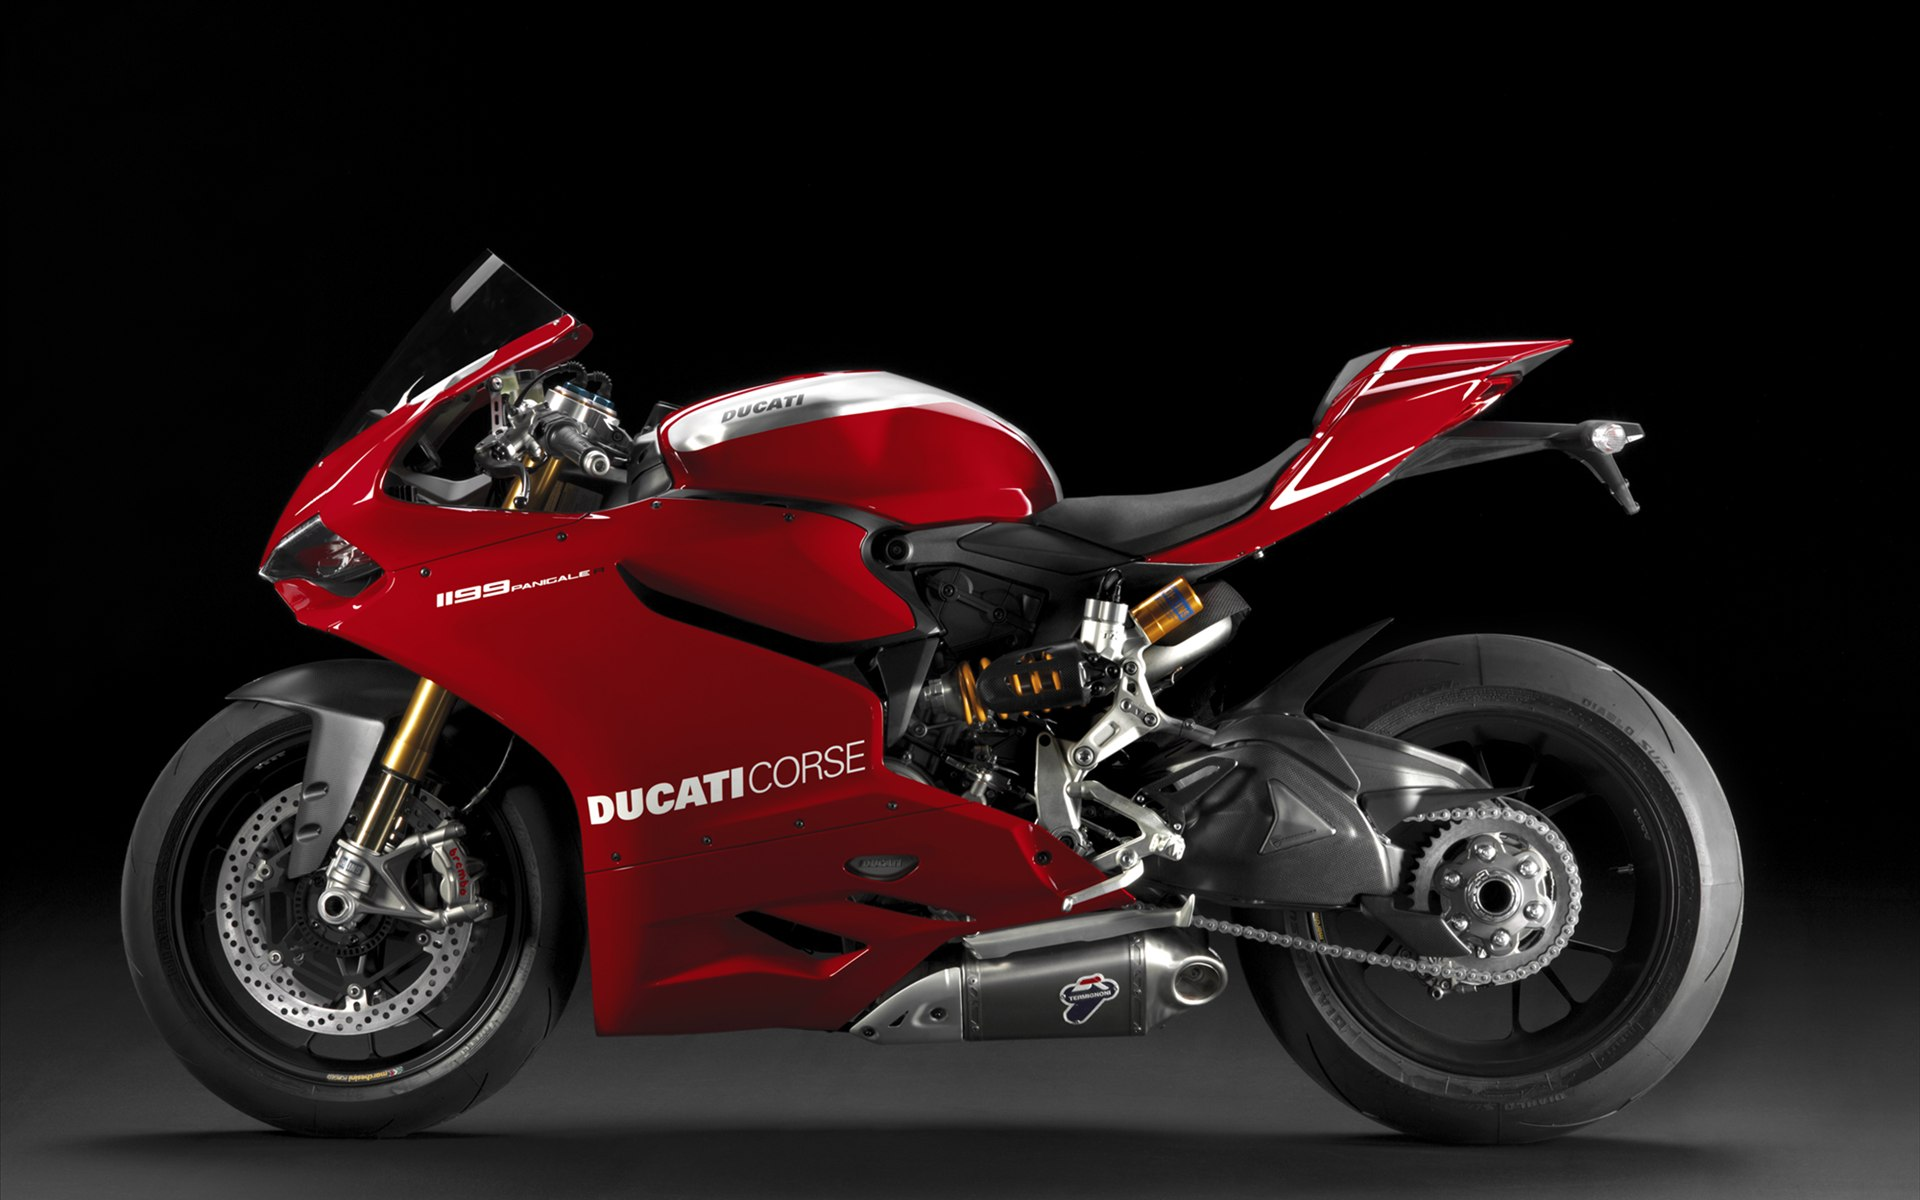 ducati 1199 panigale r hd wallpapers image gallery - hcpr